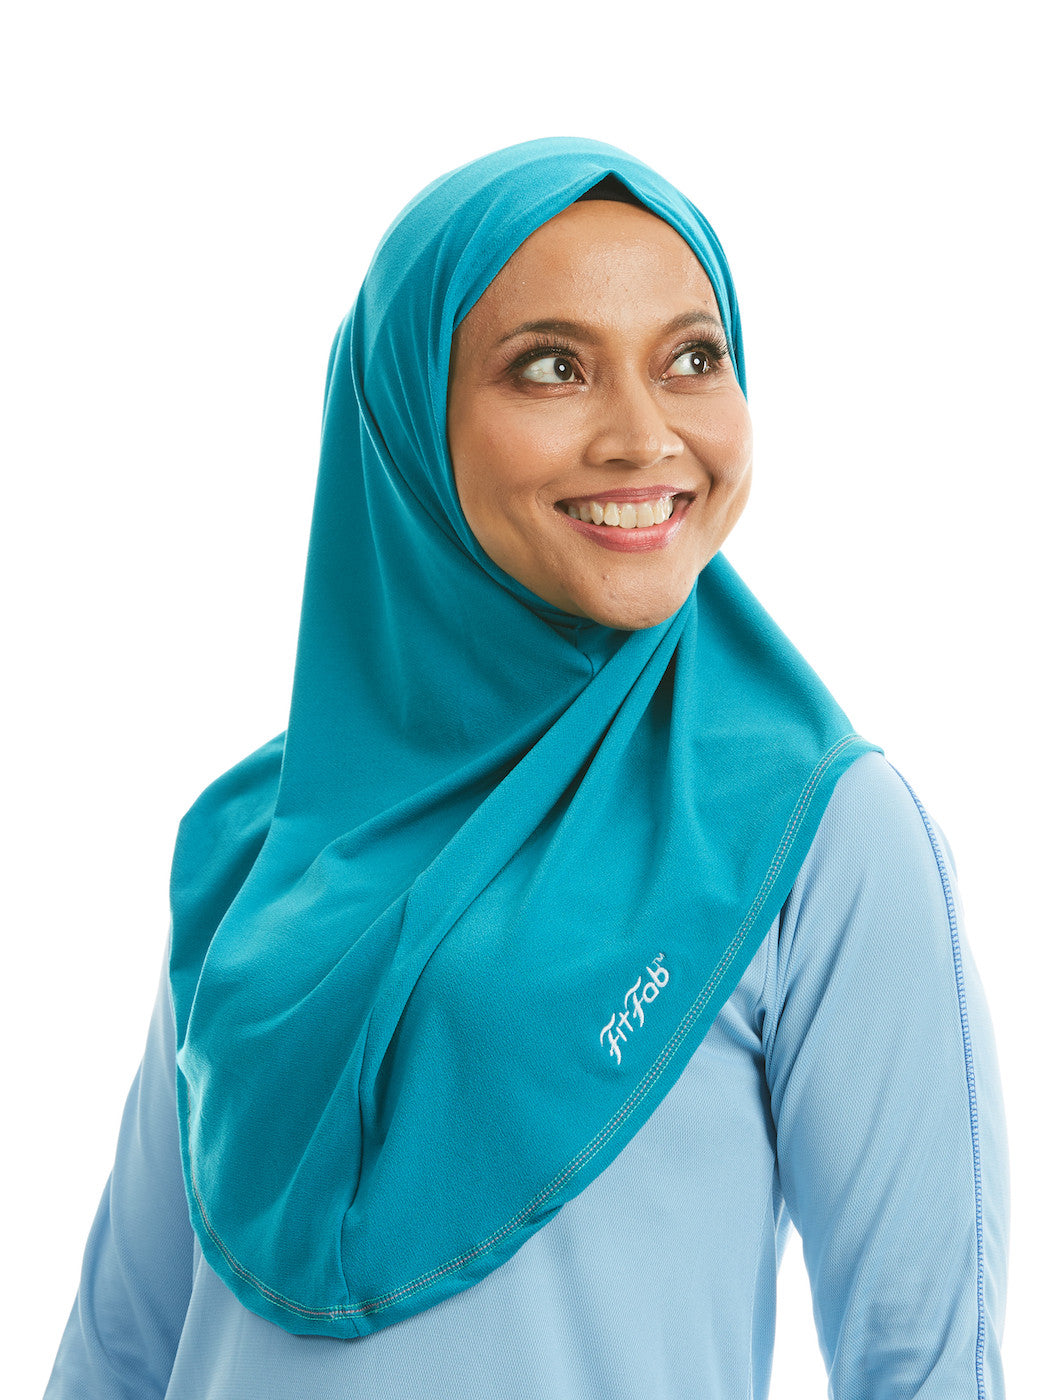 Sporty Hijab Ocean Breeze no Awning